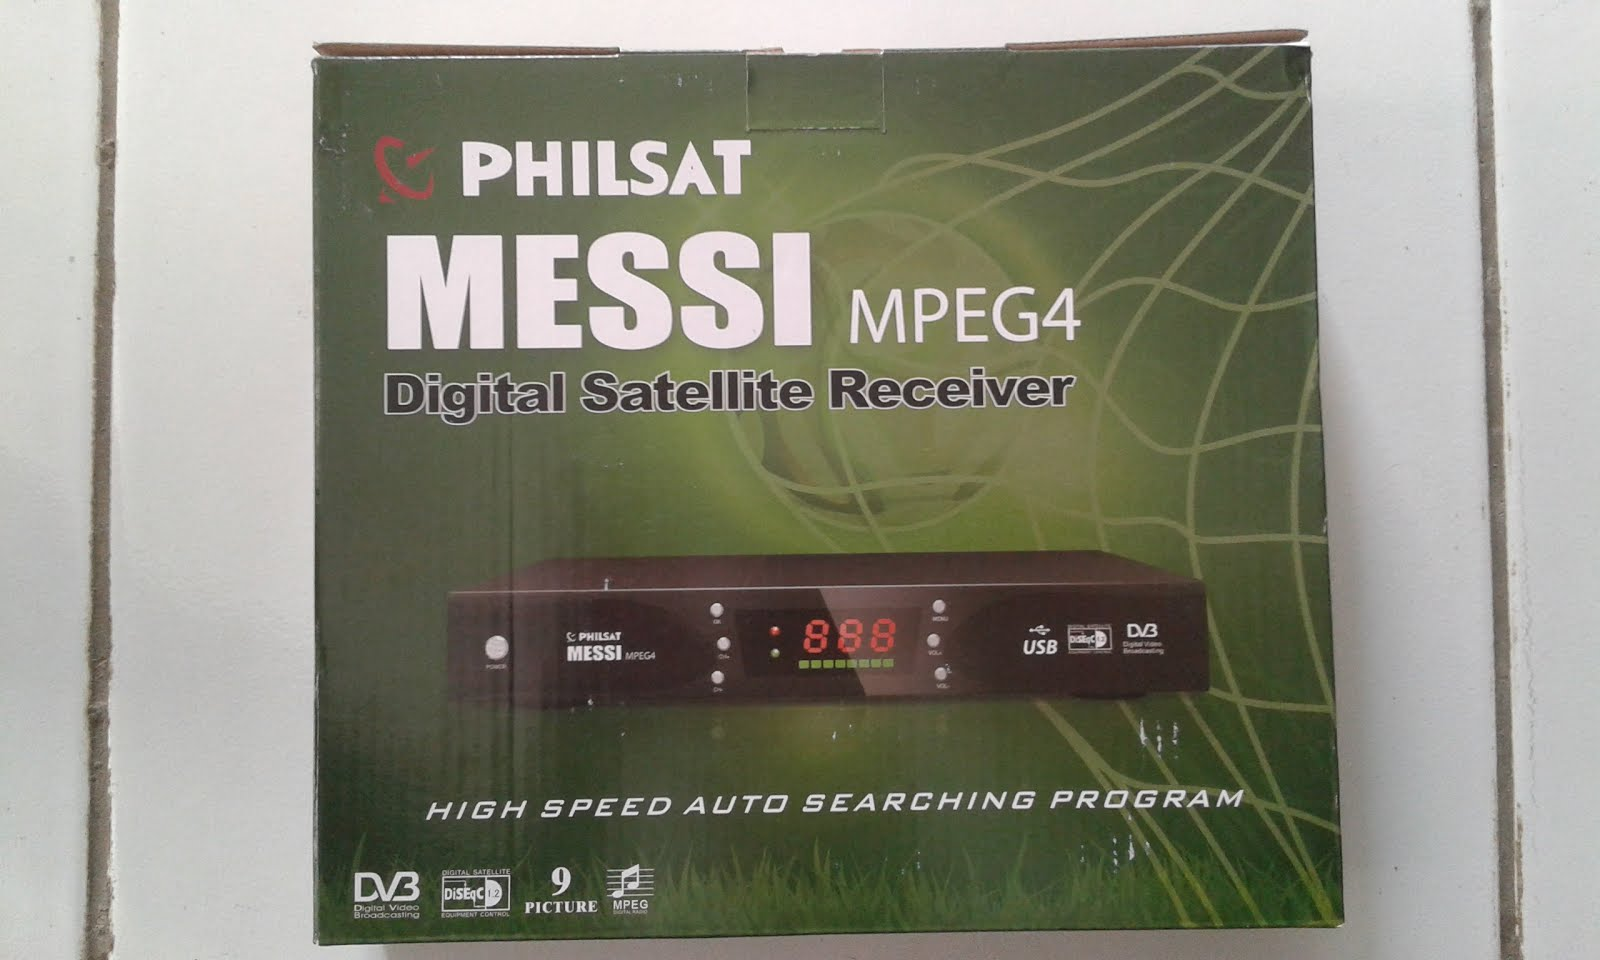 PHILSAT MESSI MPEG4